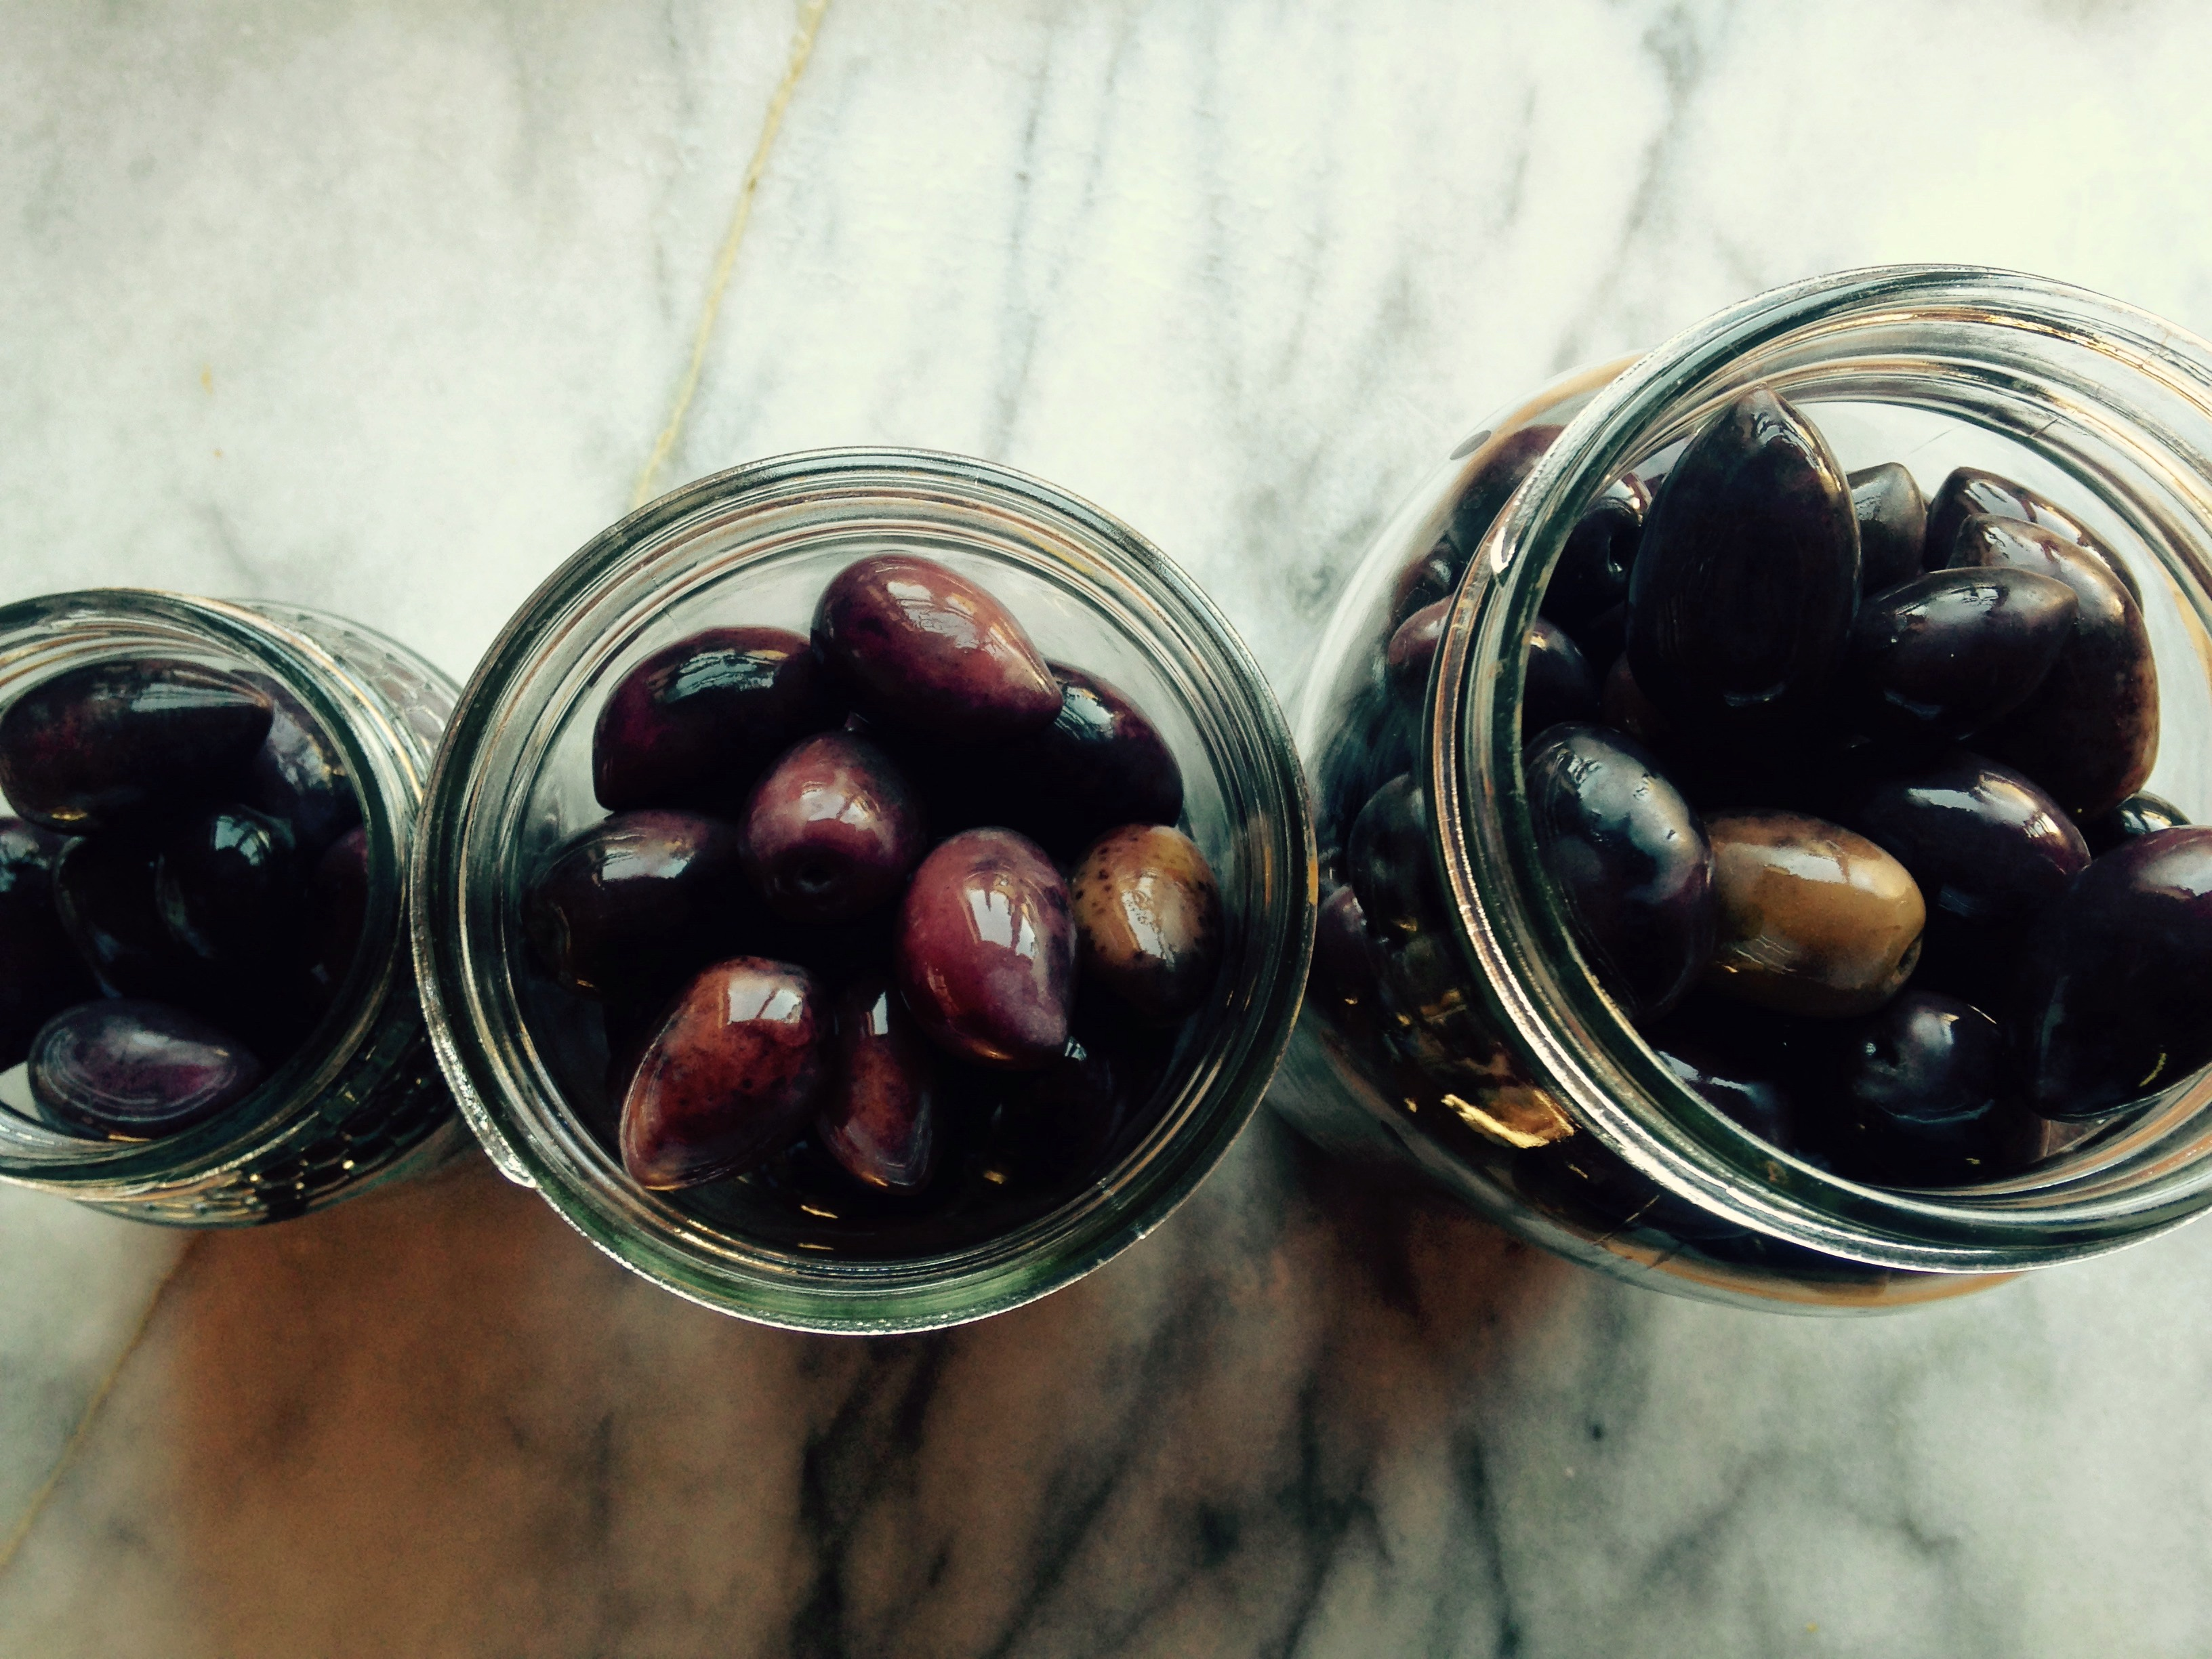 Pickled Kalamata olives in jars